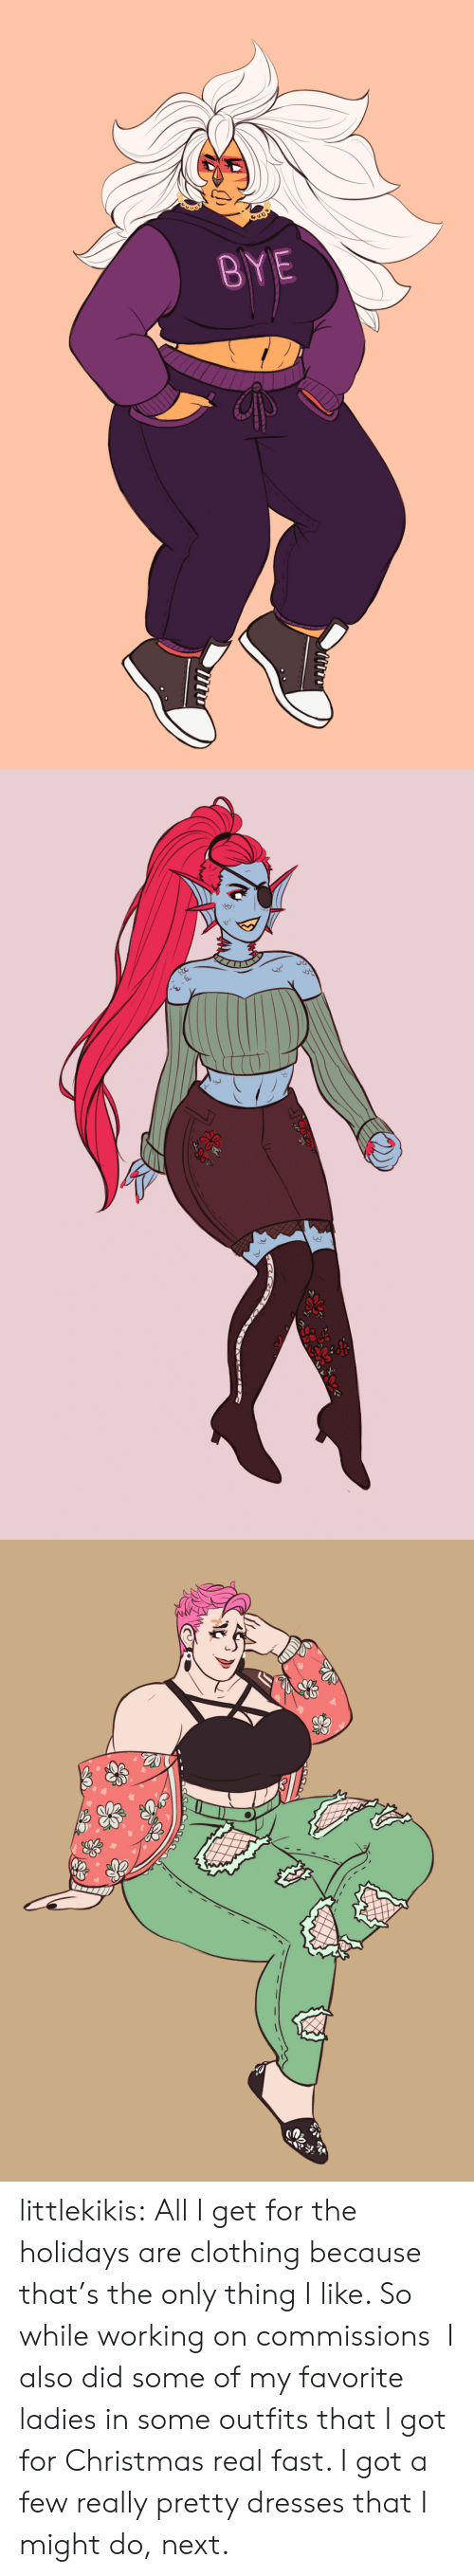 Christmas, Tumblr, and Blog: BYE littlekikis:  All I get for the holidays are clothing because that's the only thing I like. So while working on commissions I also did some of my favorite ladies in some outfits that I got for Christmas real fast. I got a few really pretty dresses that I might do, next.